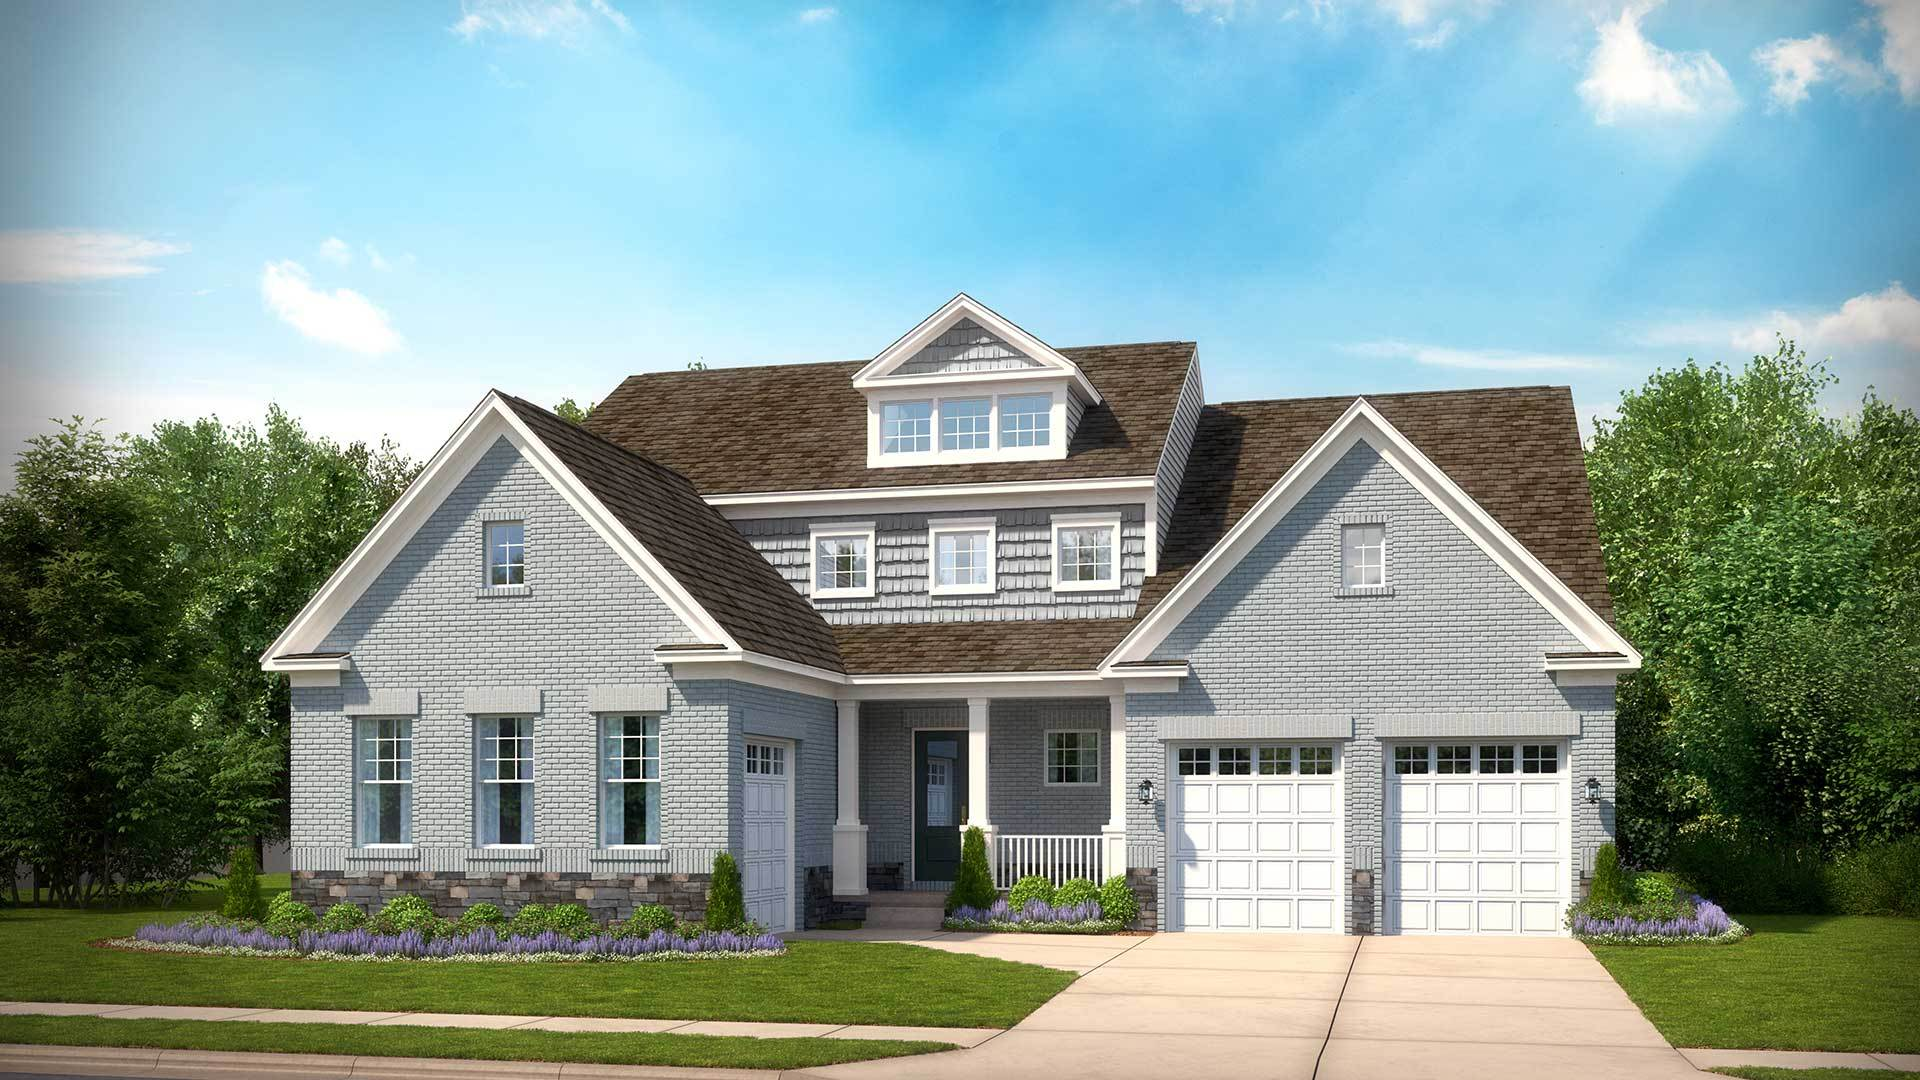 Single Family for Active at Summerhouse Landing - Russell 11858 Boscobel Court Herndon, Virginia 20170 United States